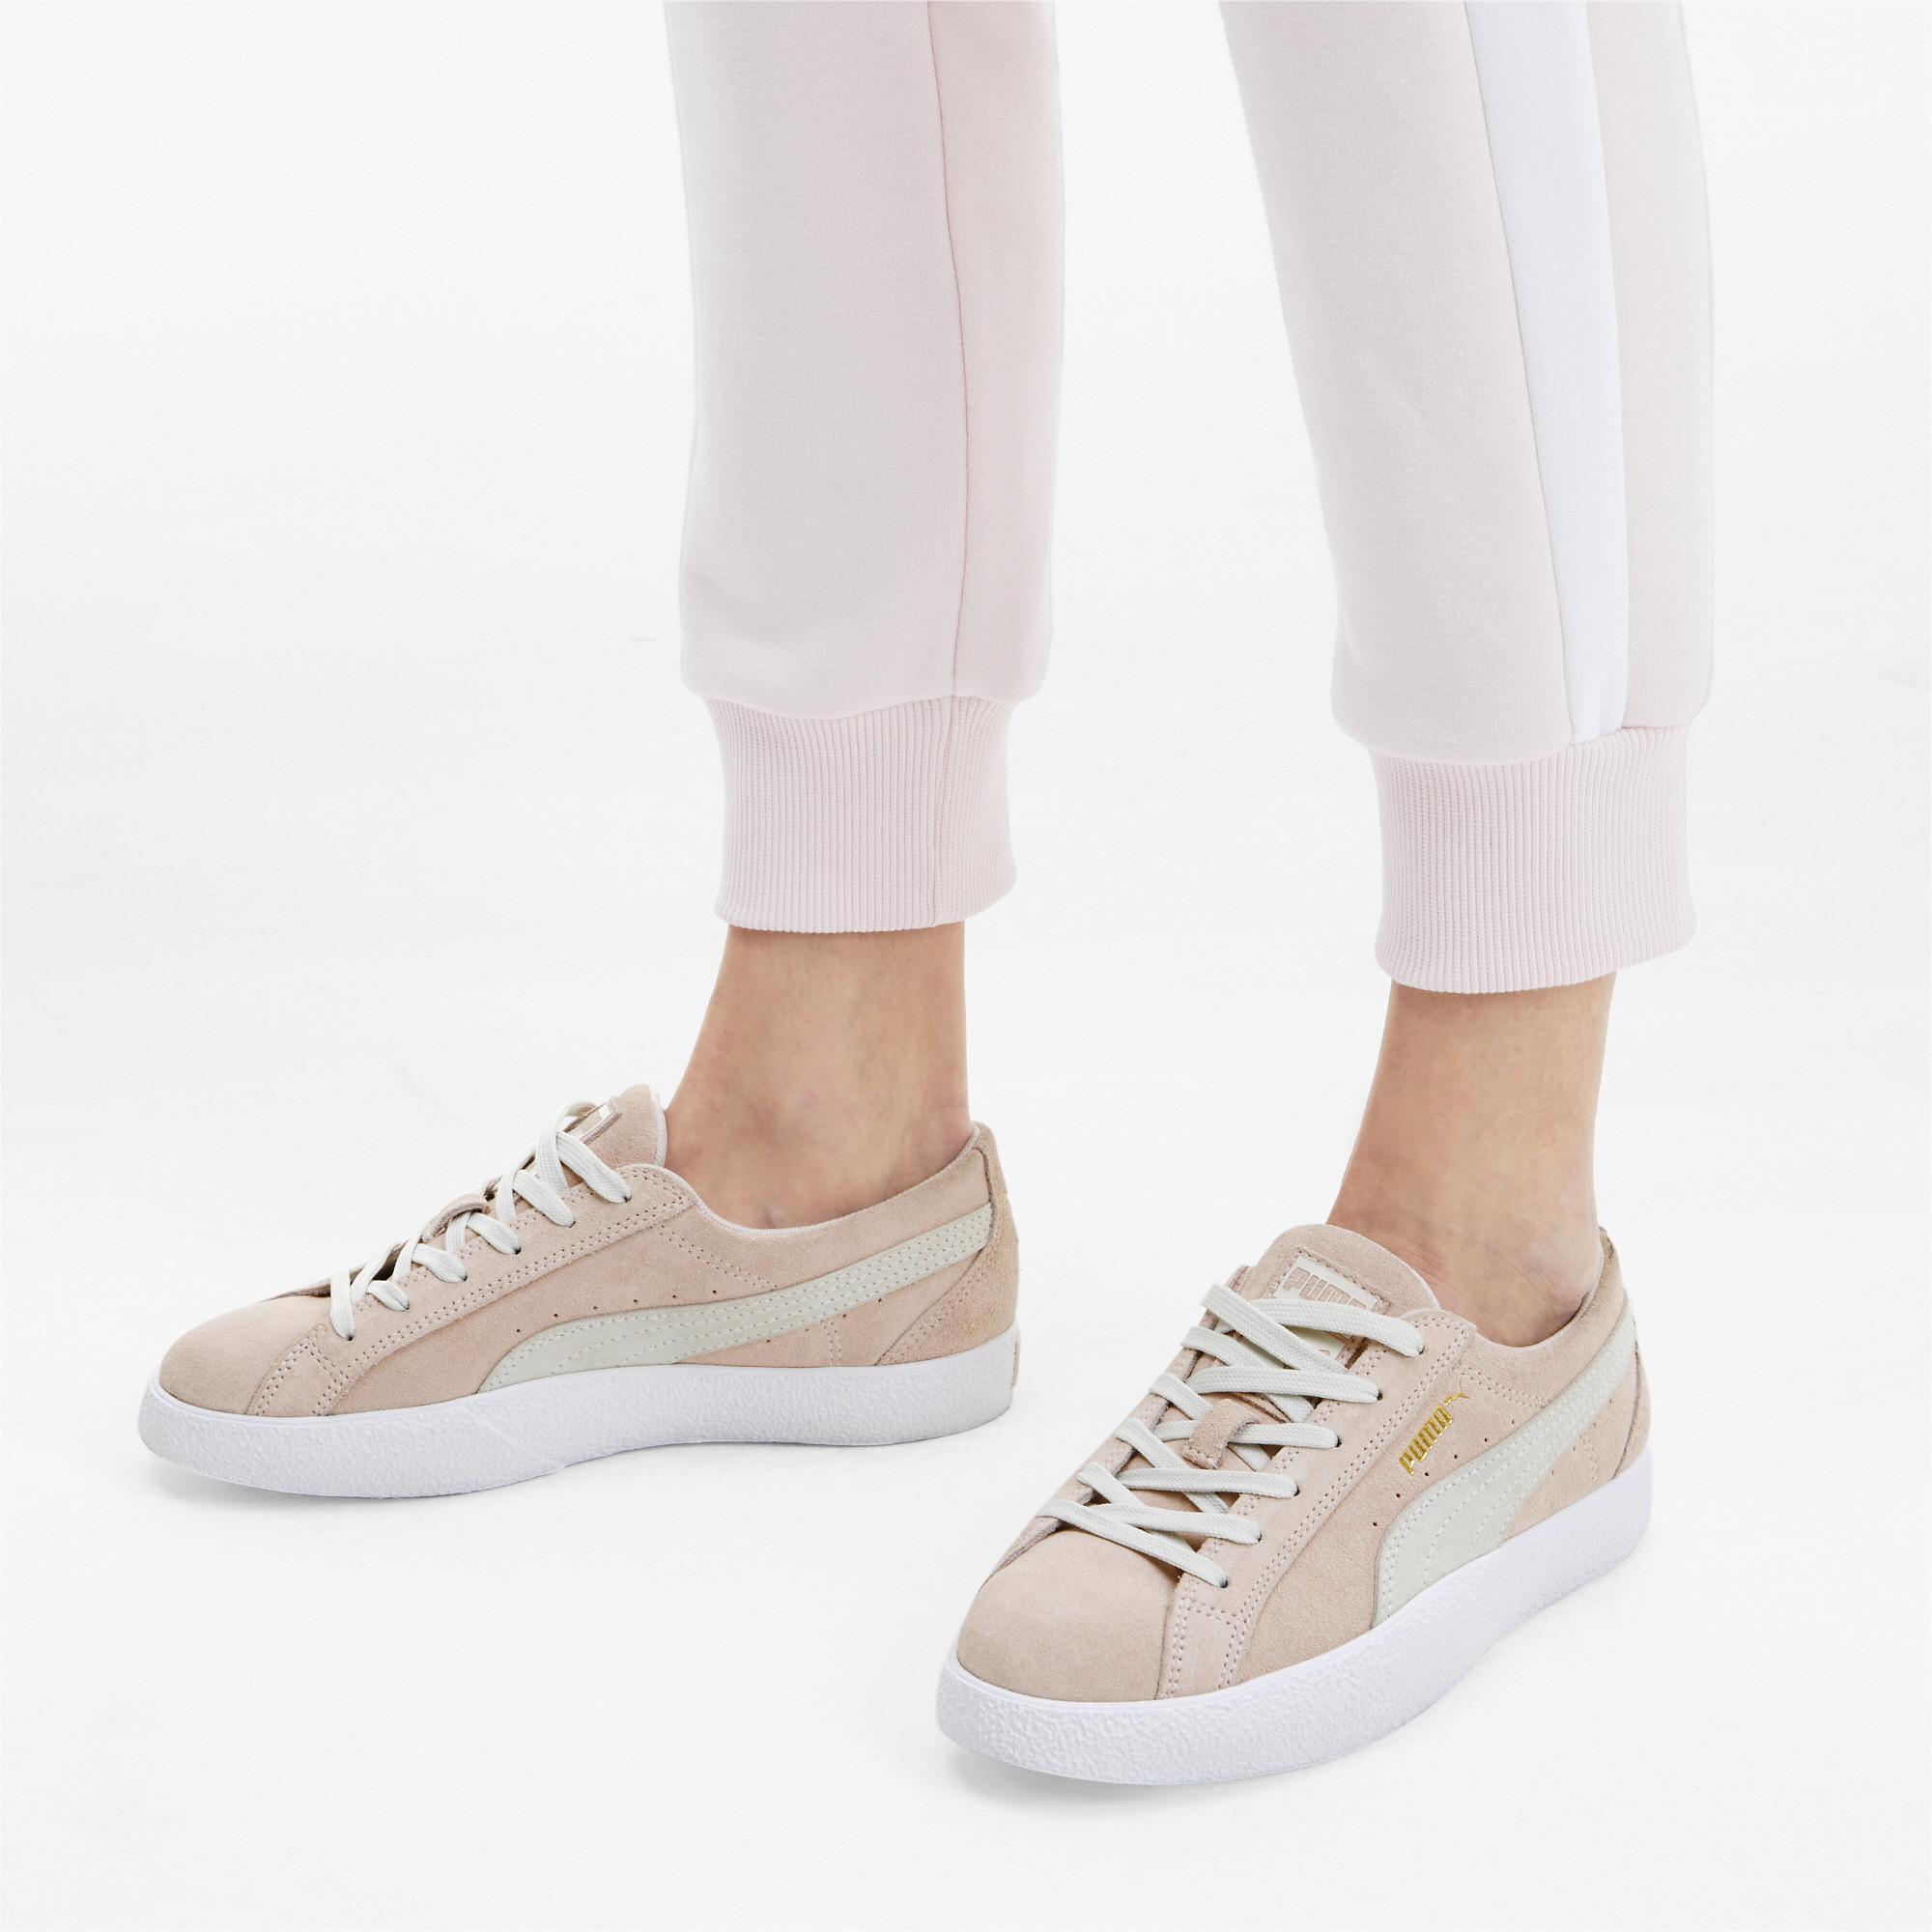 PUMA-Women-039-s-Love-Suede-Sneakers thumbnail 5